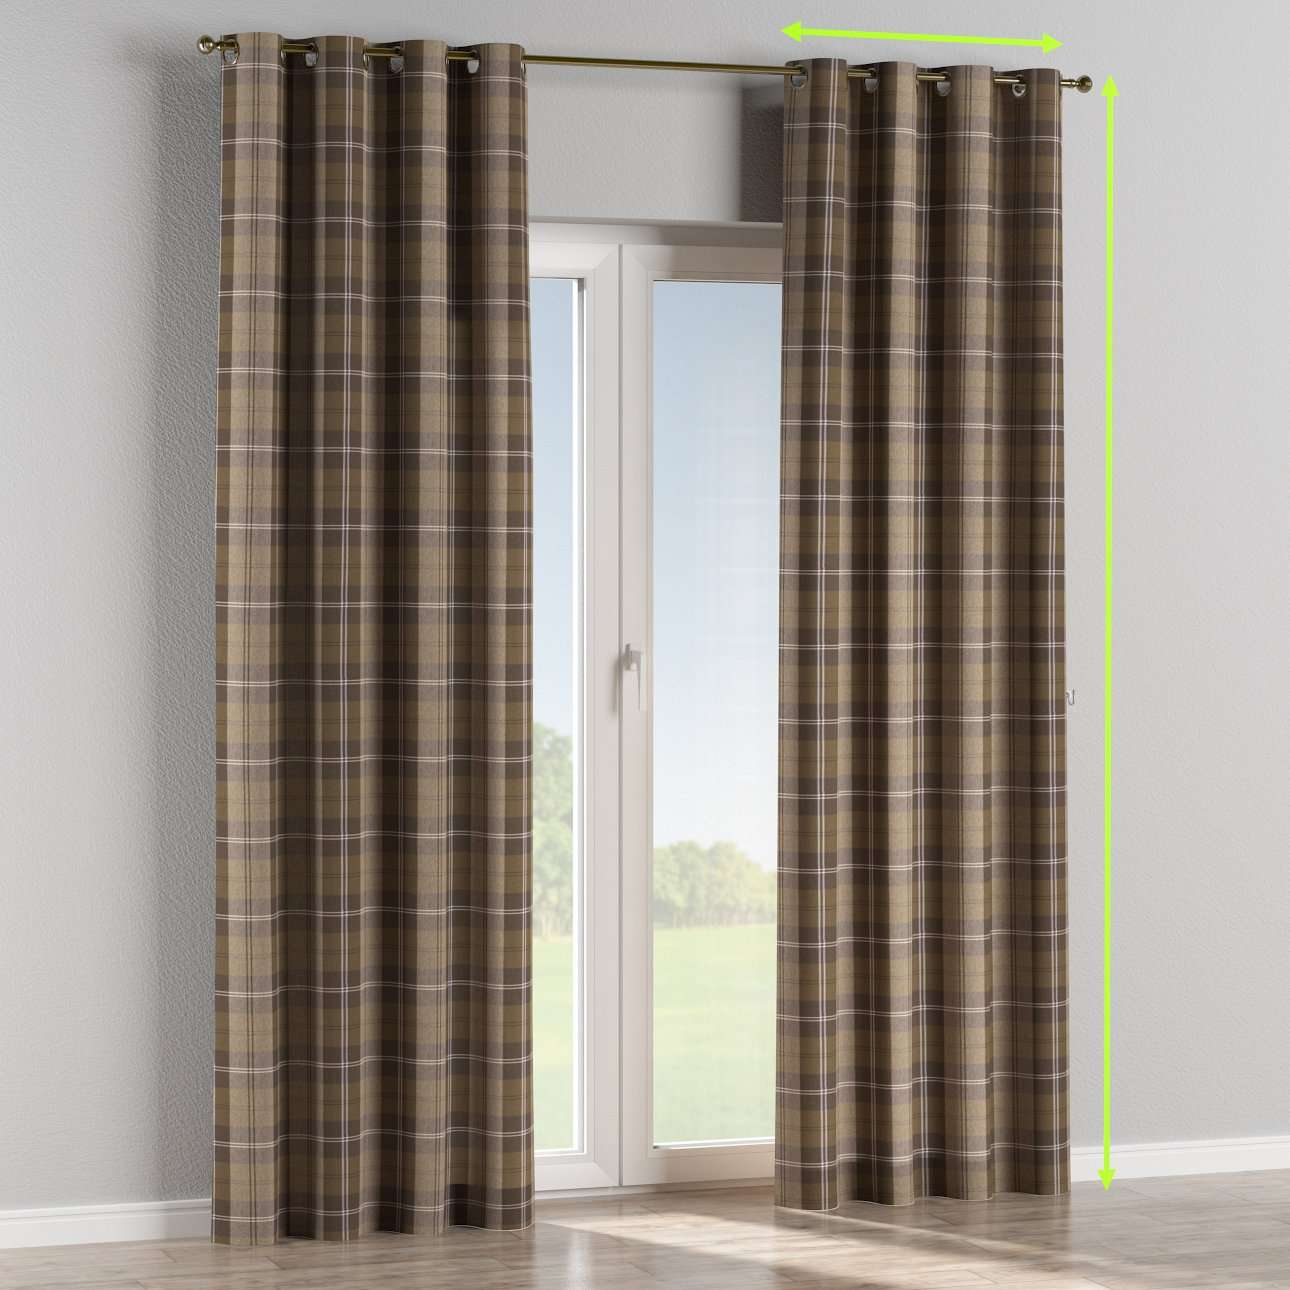 Eyelet curtains in collection Edinburgh, fabric: 115-76